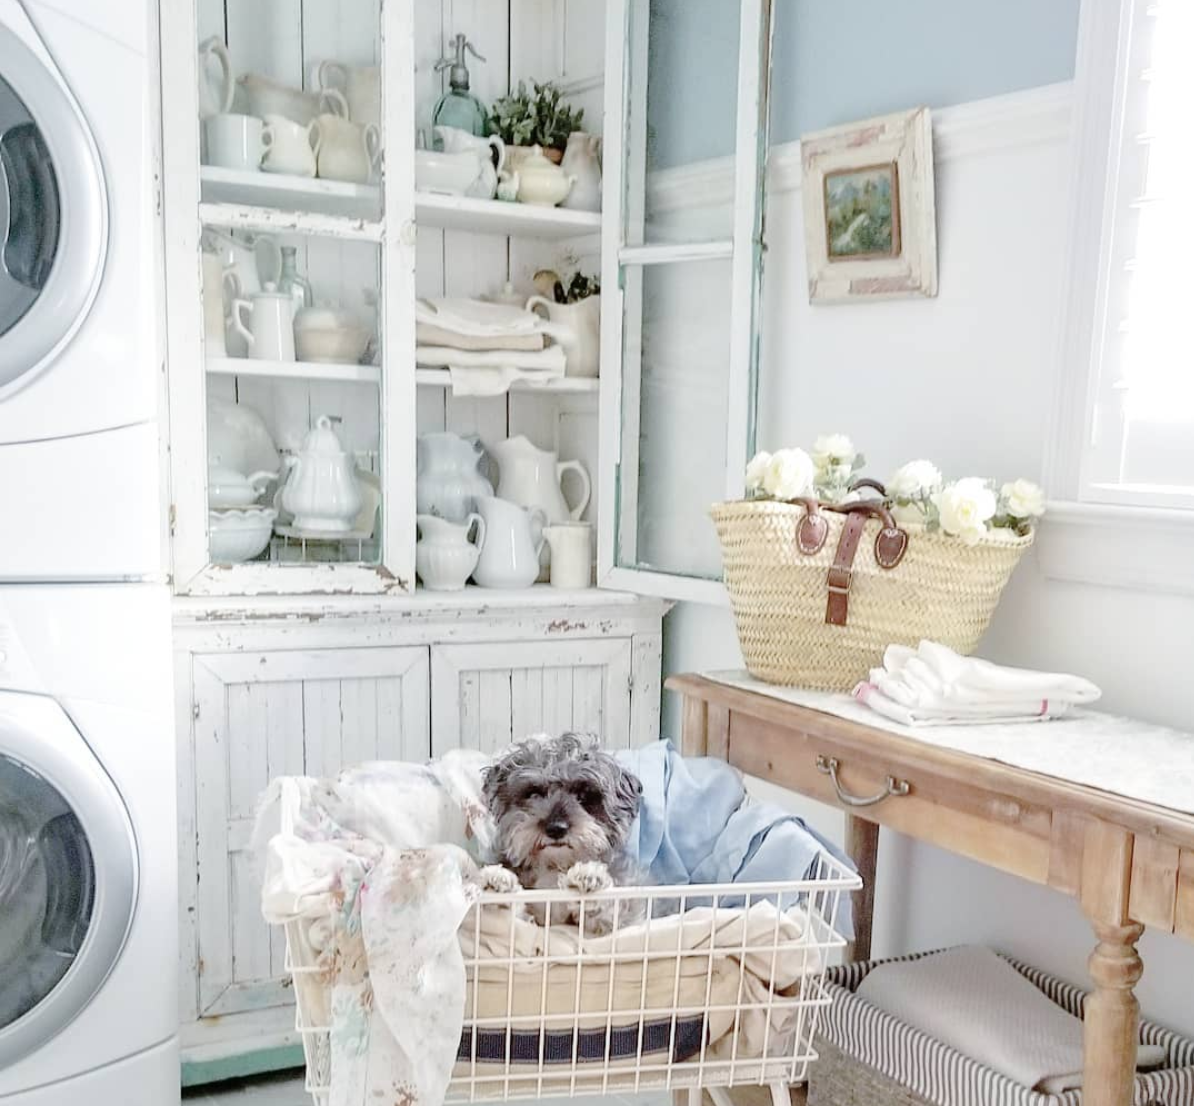 Vintage style beautiful laundry room by Pancake Hill with a sweet schnauzer in the laundry basket!